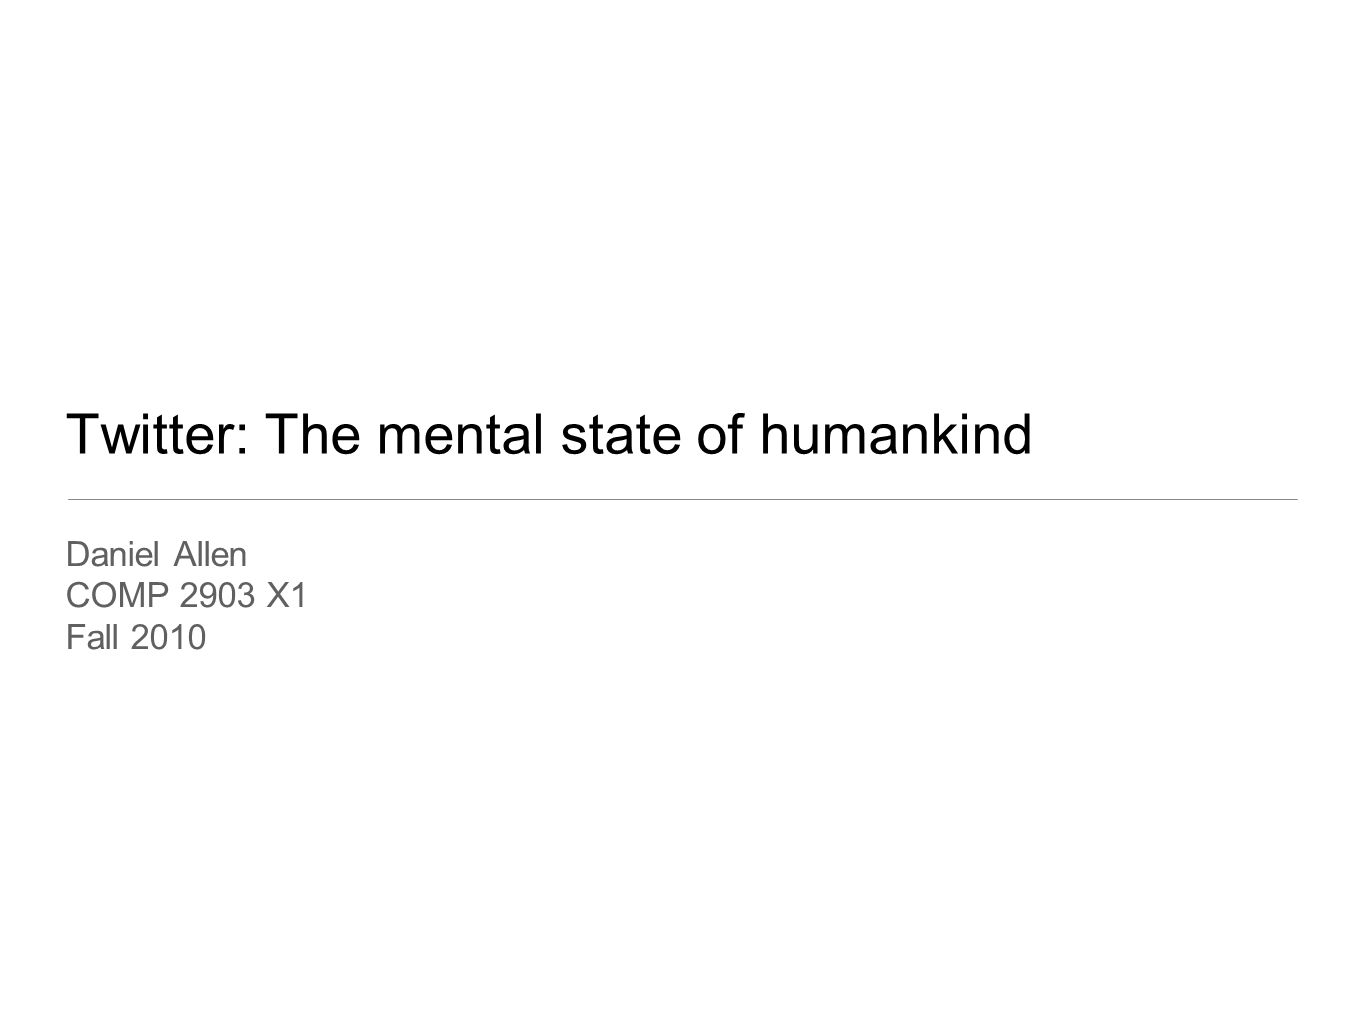 Twitter: The mental state of humankind Daniel Allen COMP 2903 X1 Fall 2010